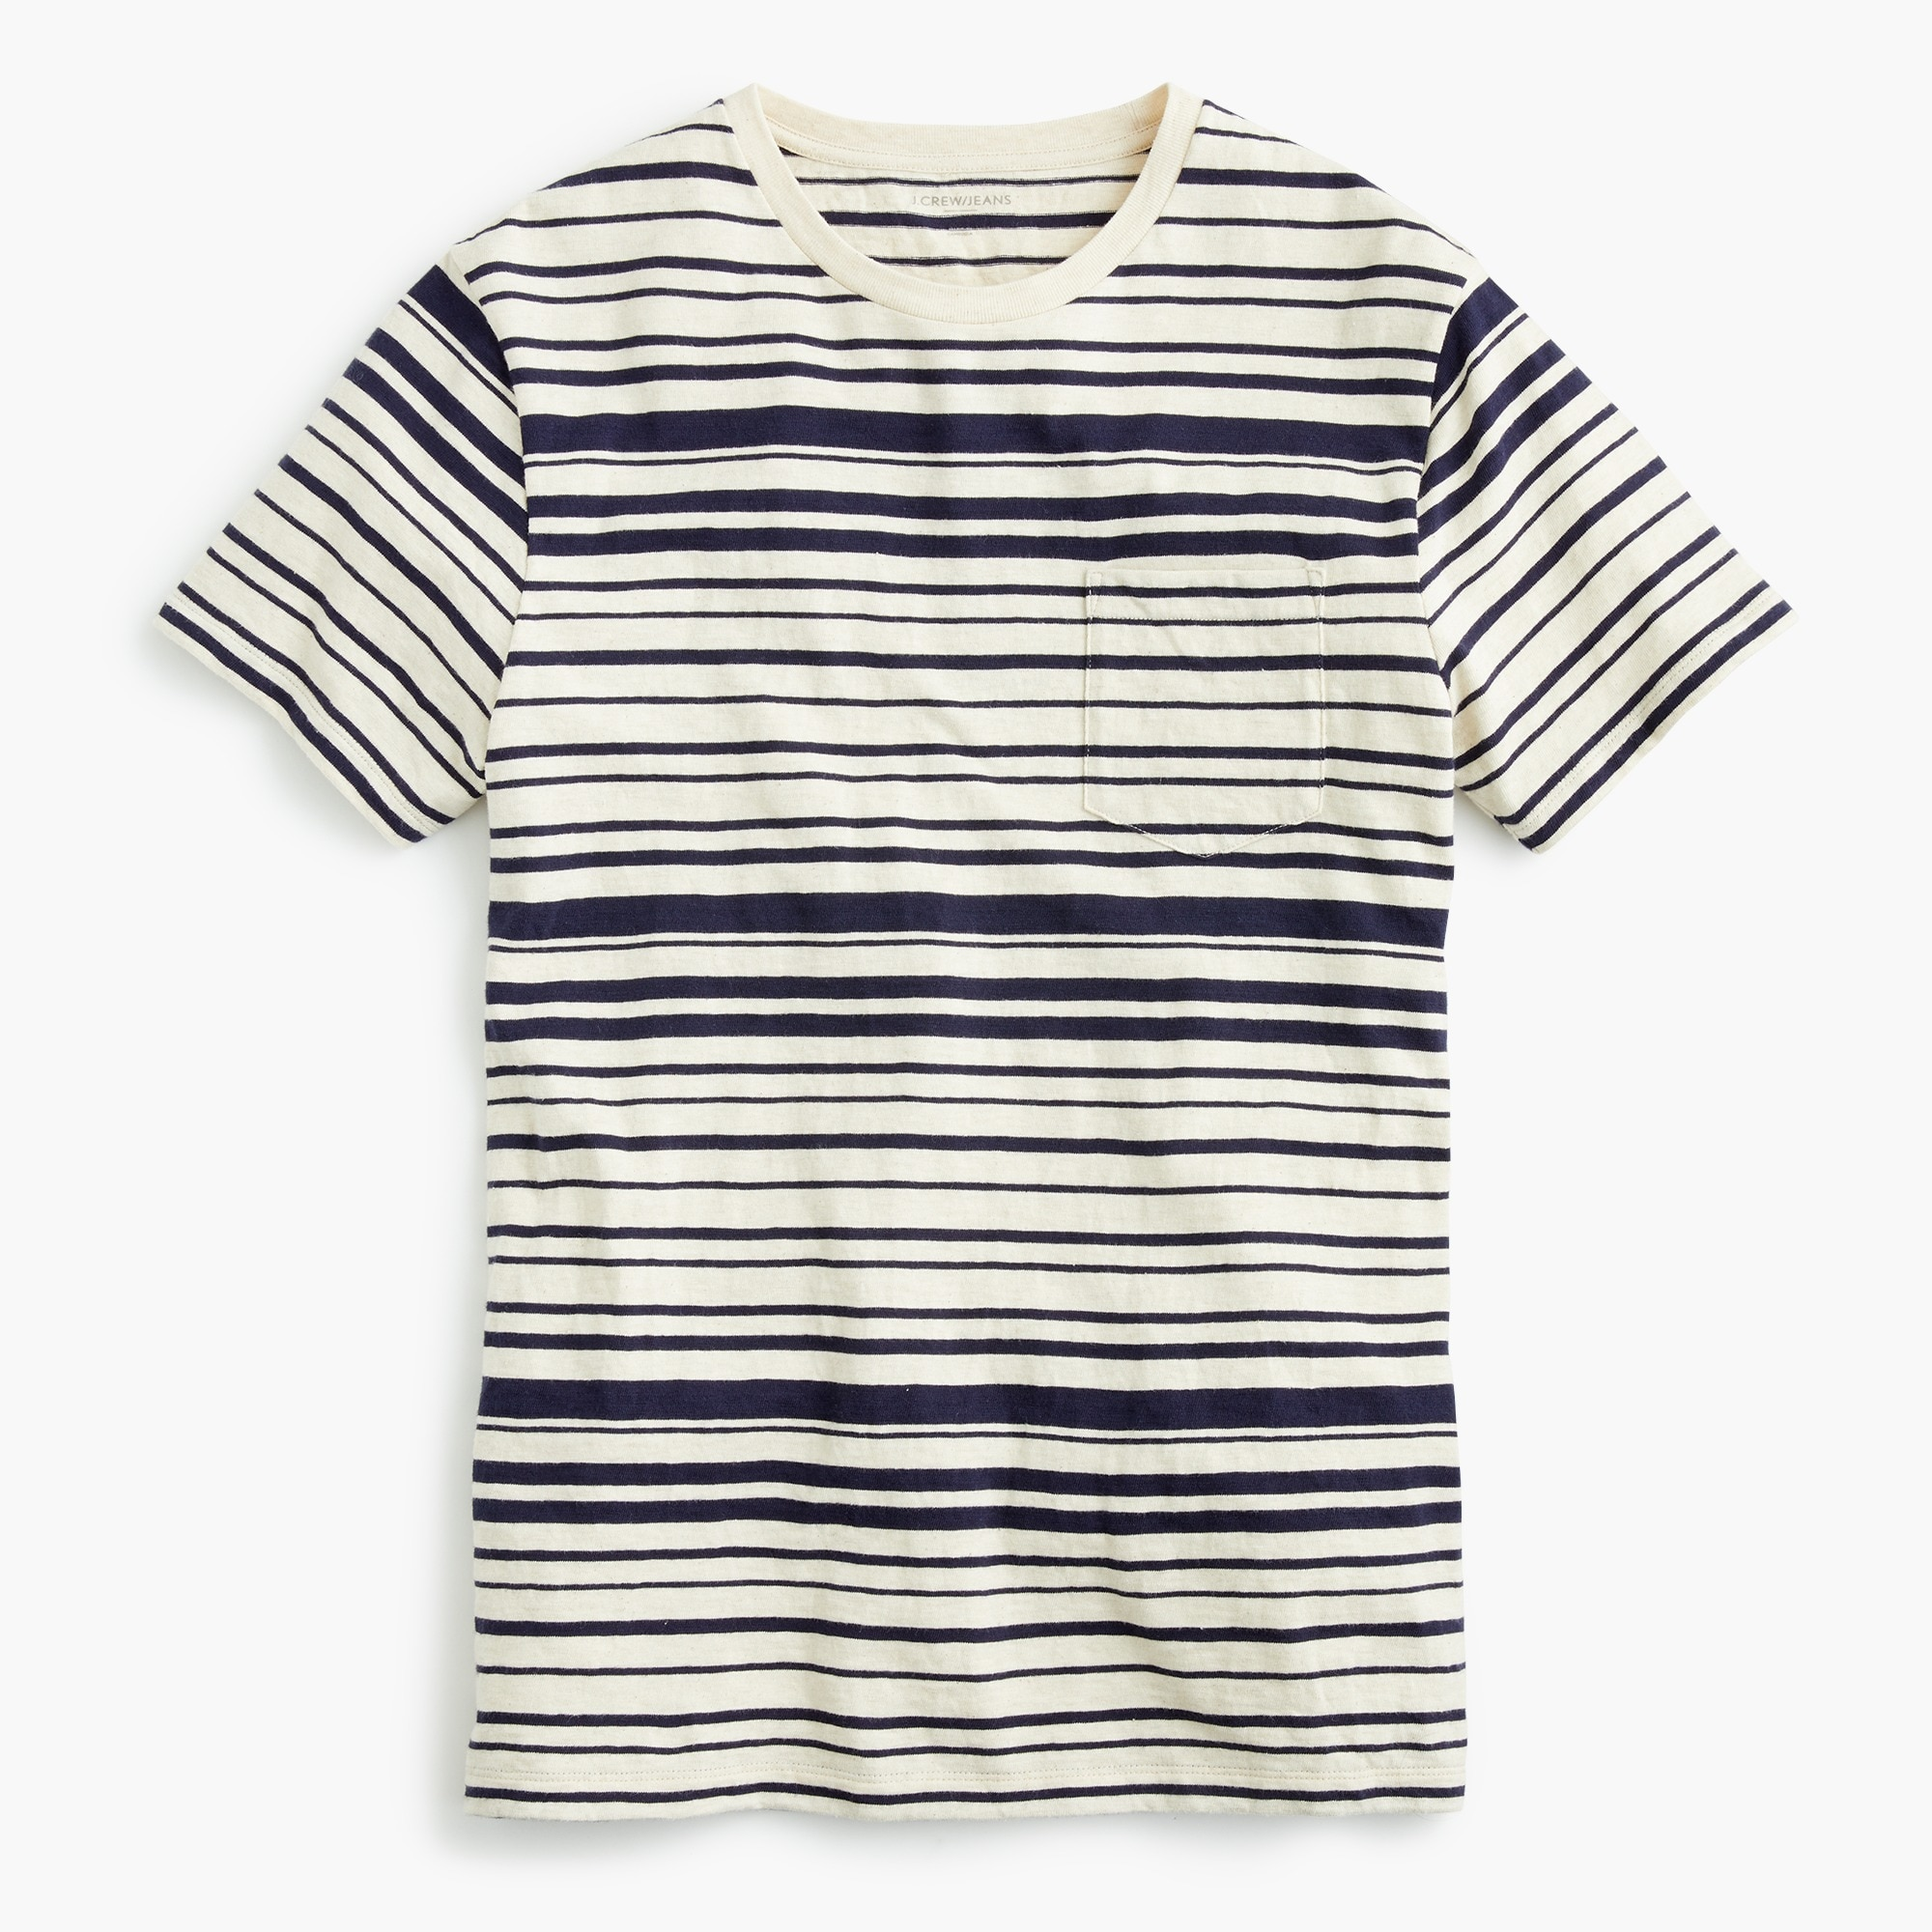 Image 1 for Tall J.Crew Jeans slub cotton T-shirt in variegated stripe